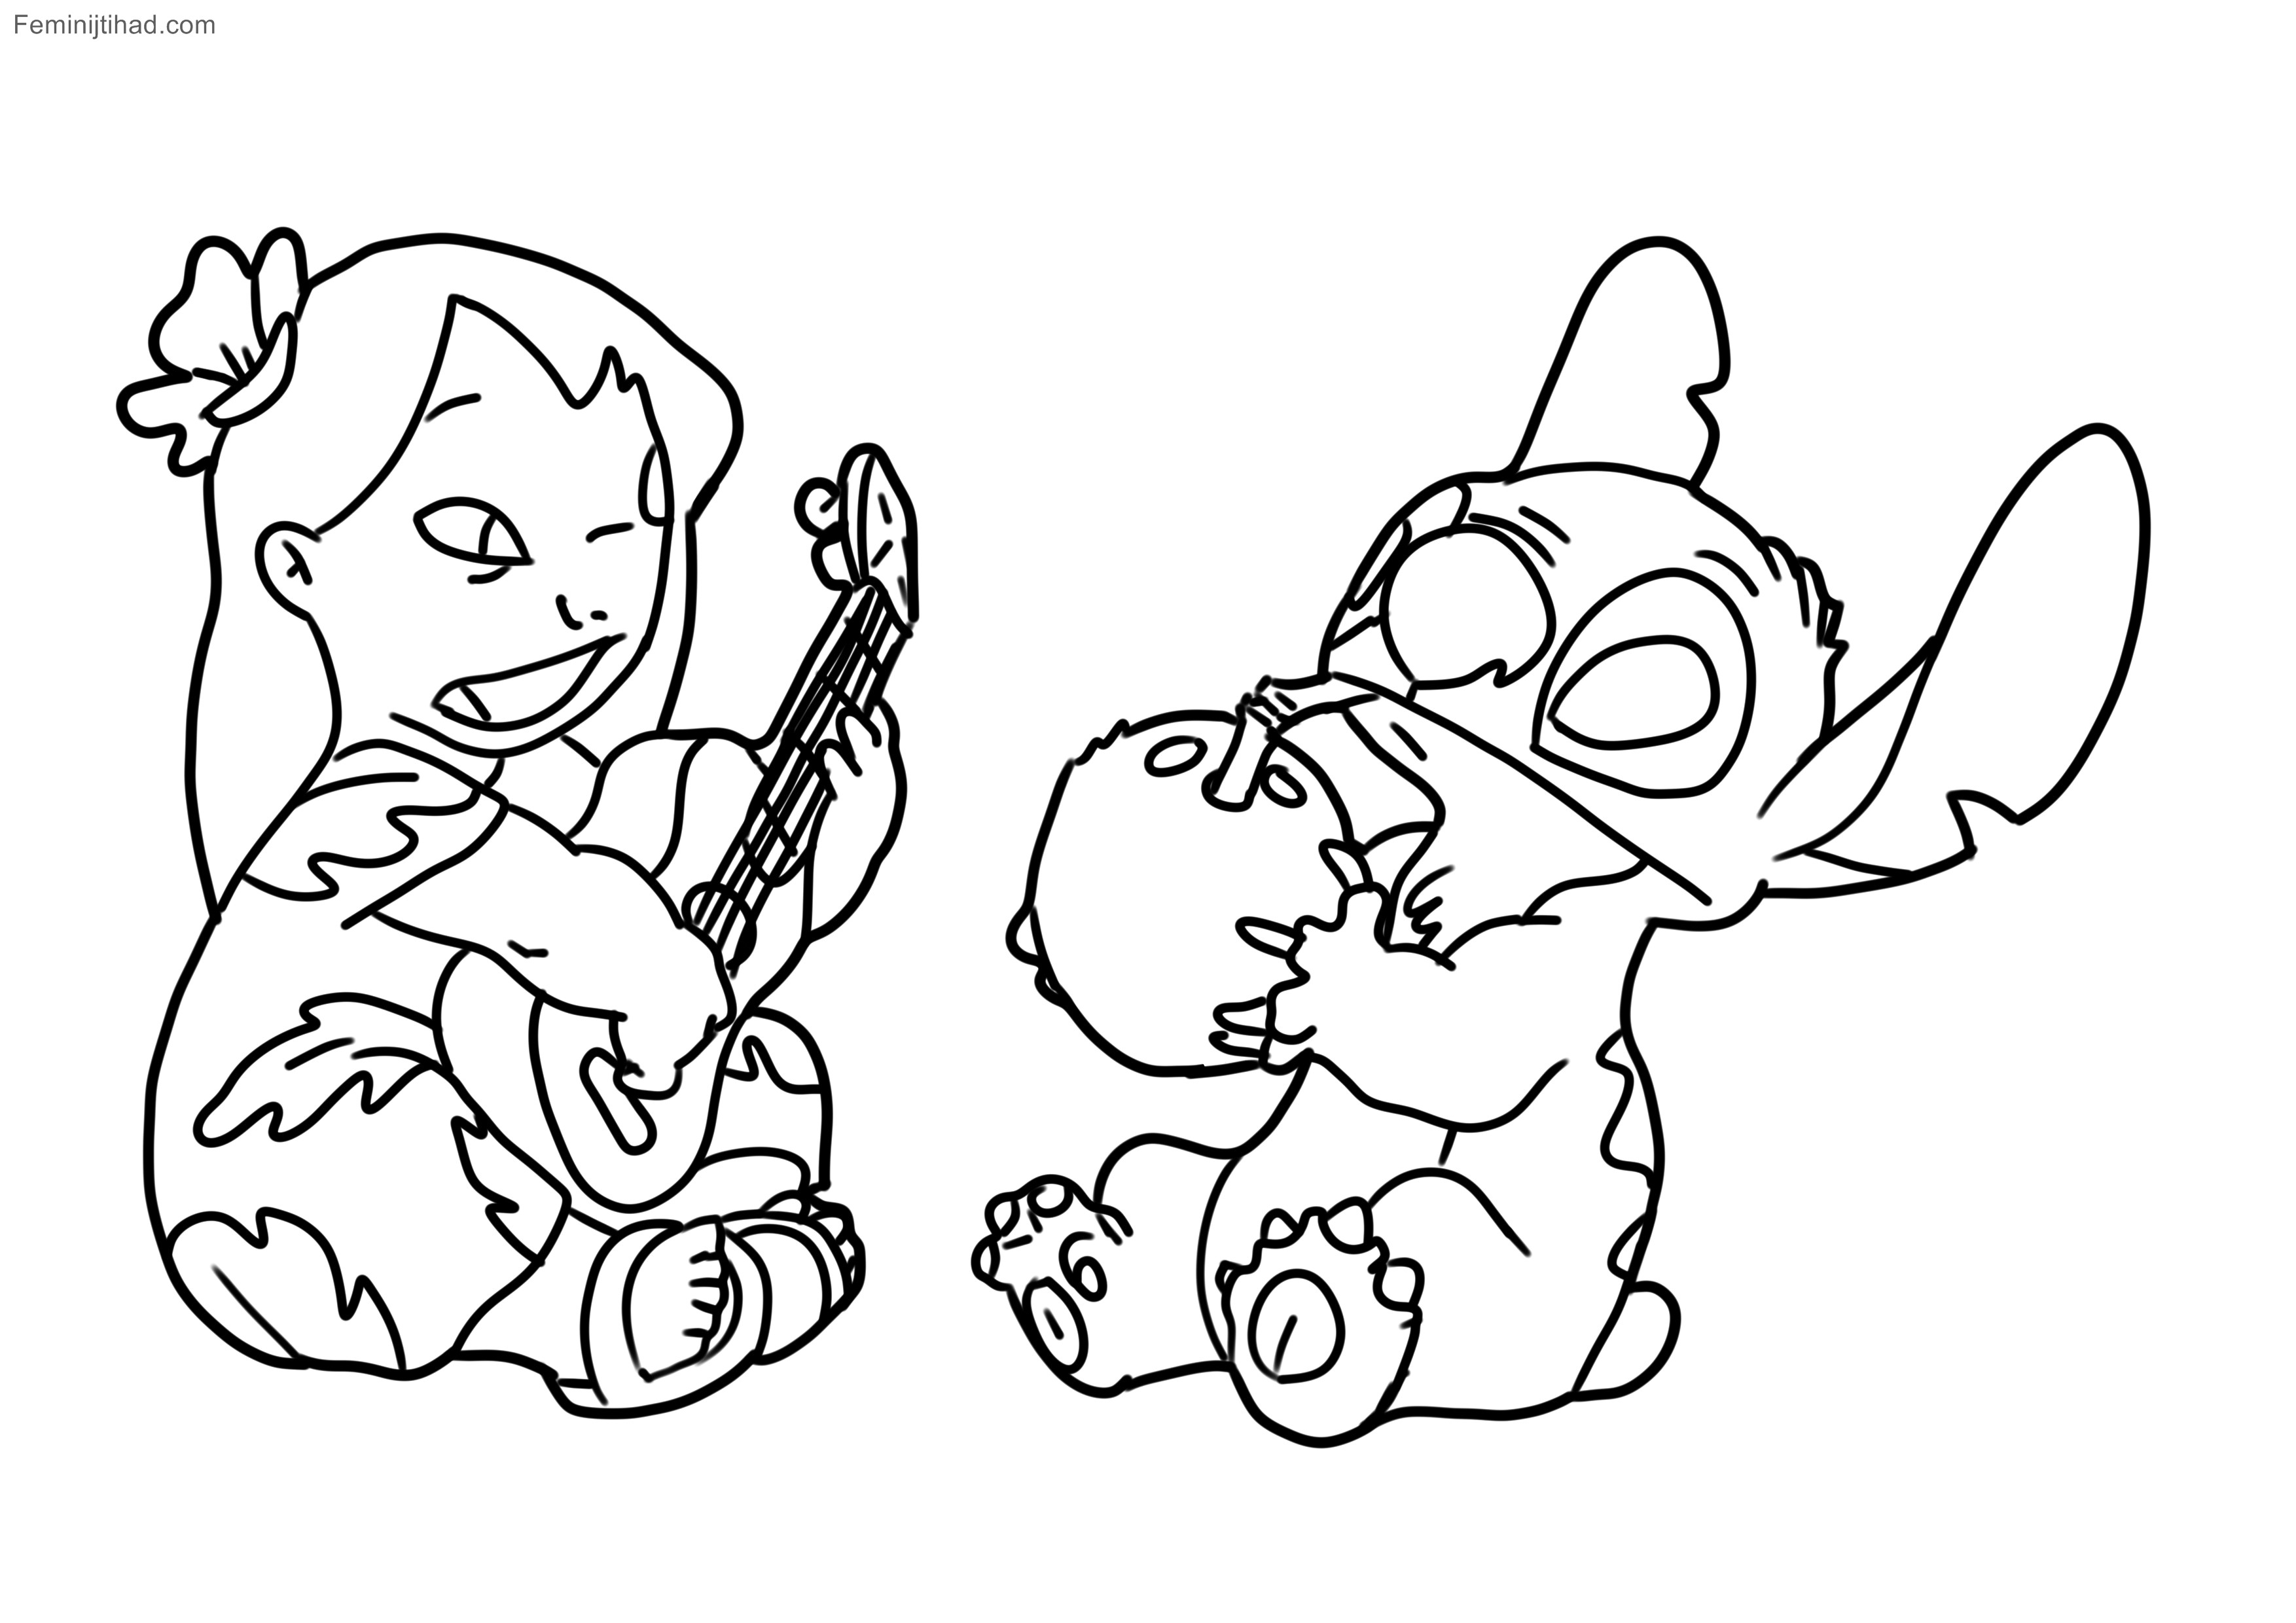 Lilo And Stitch Coloring Pages Improved Lilo Stitch Coloring Pages Cute Best Of And Bike Ideas20 Birijus Com